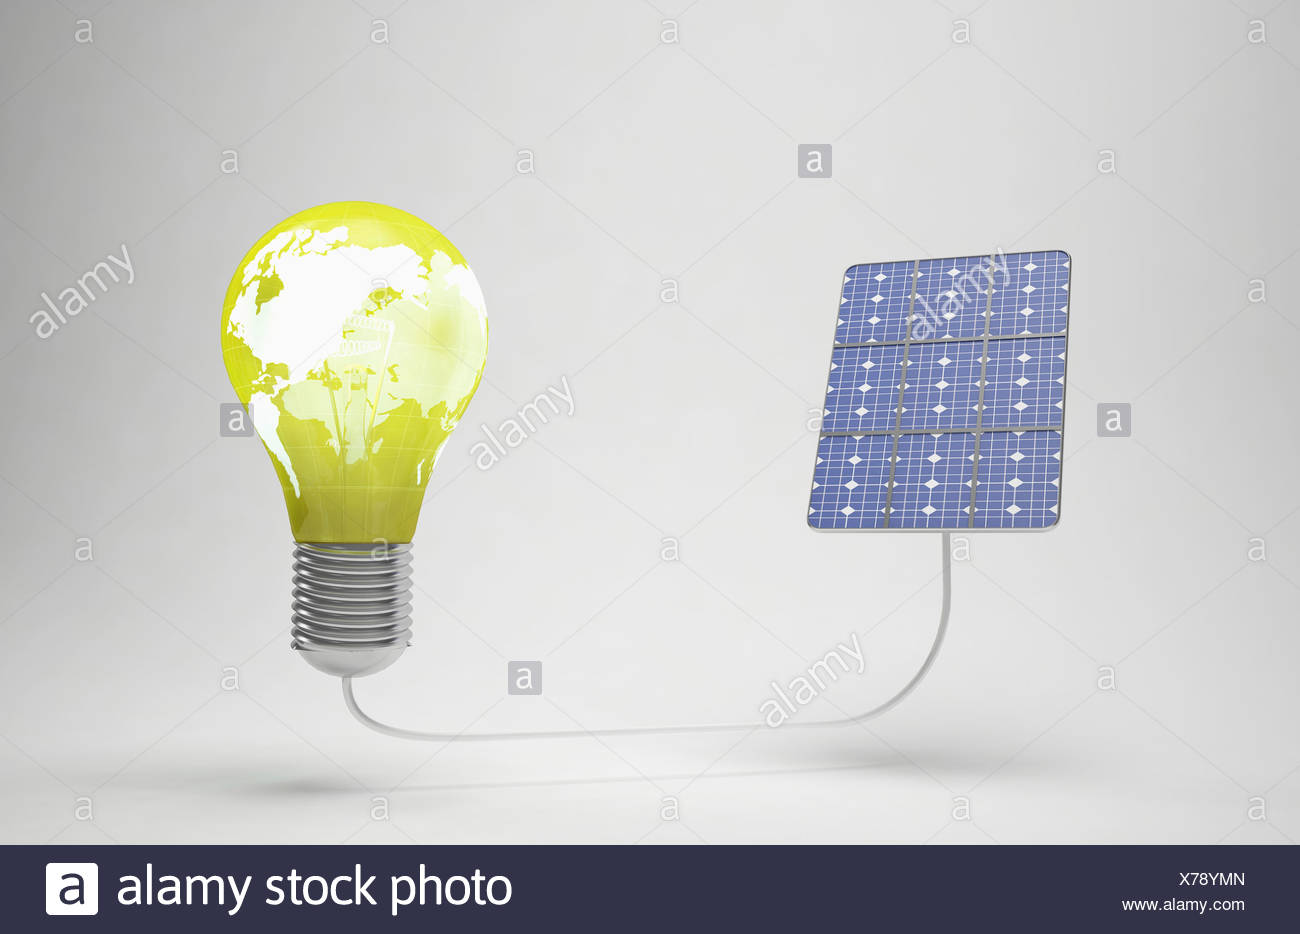 a light bulb connected to a solar panel Stock Photo: 279865845 - Alamy